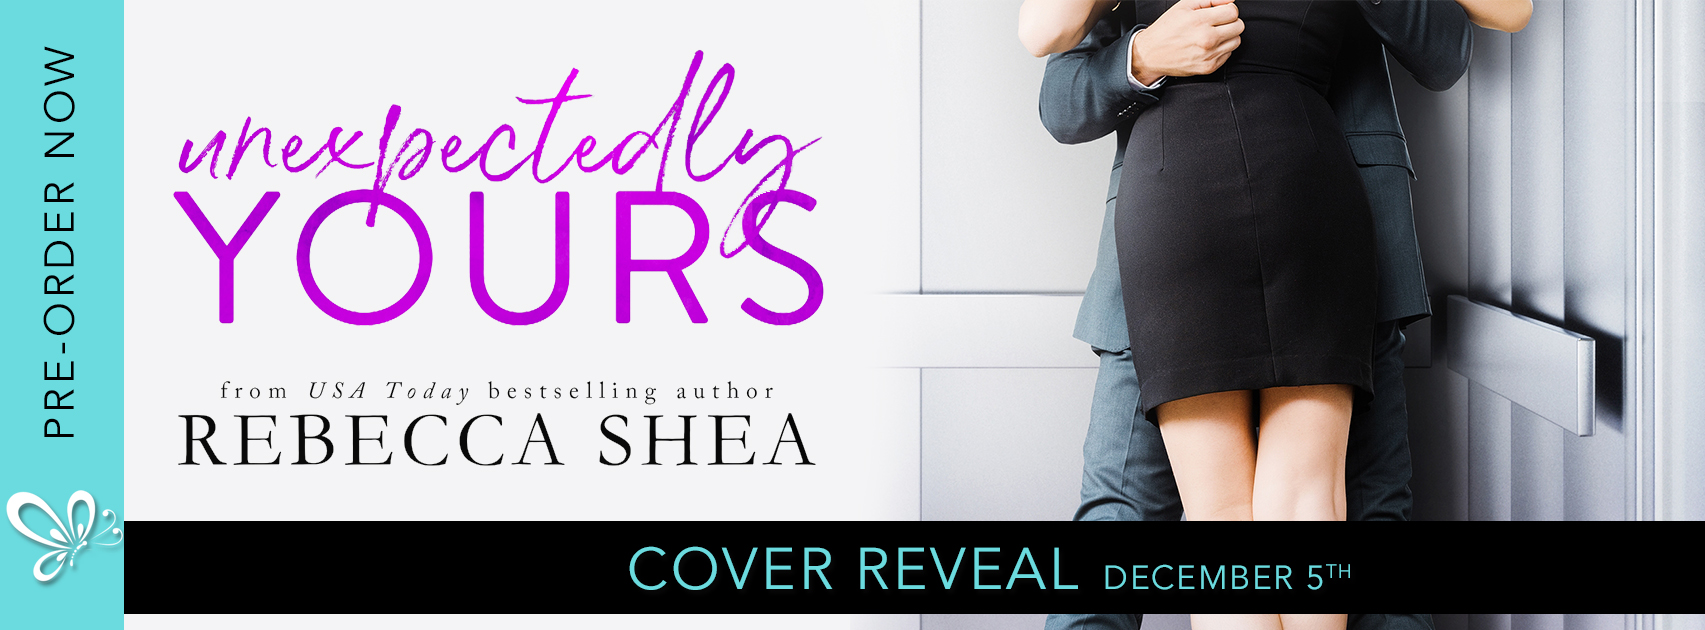 Social Butterfly PR Cover Reveal: Unexpectedly Yours by Rebecca Shea